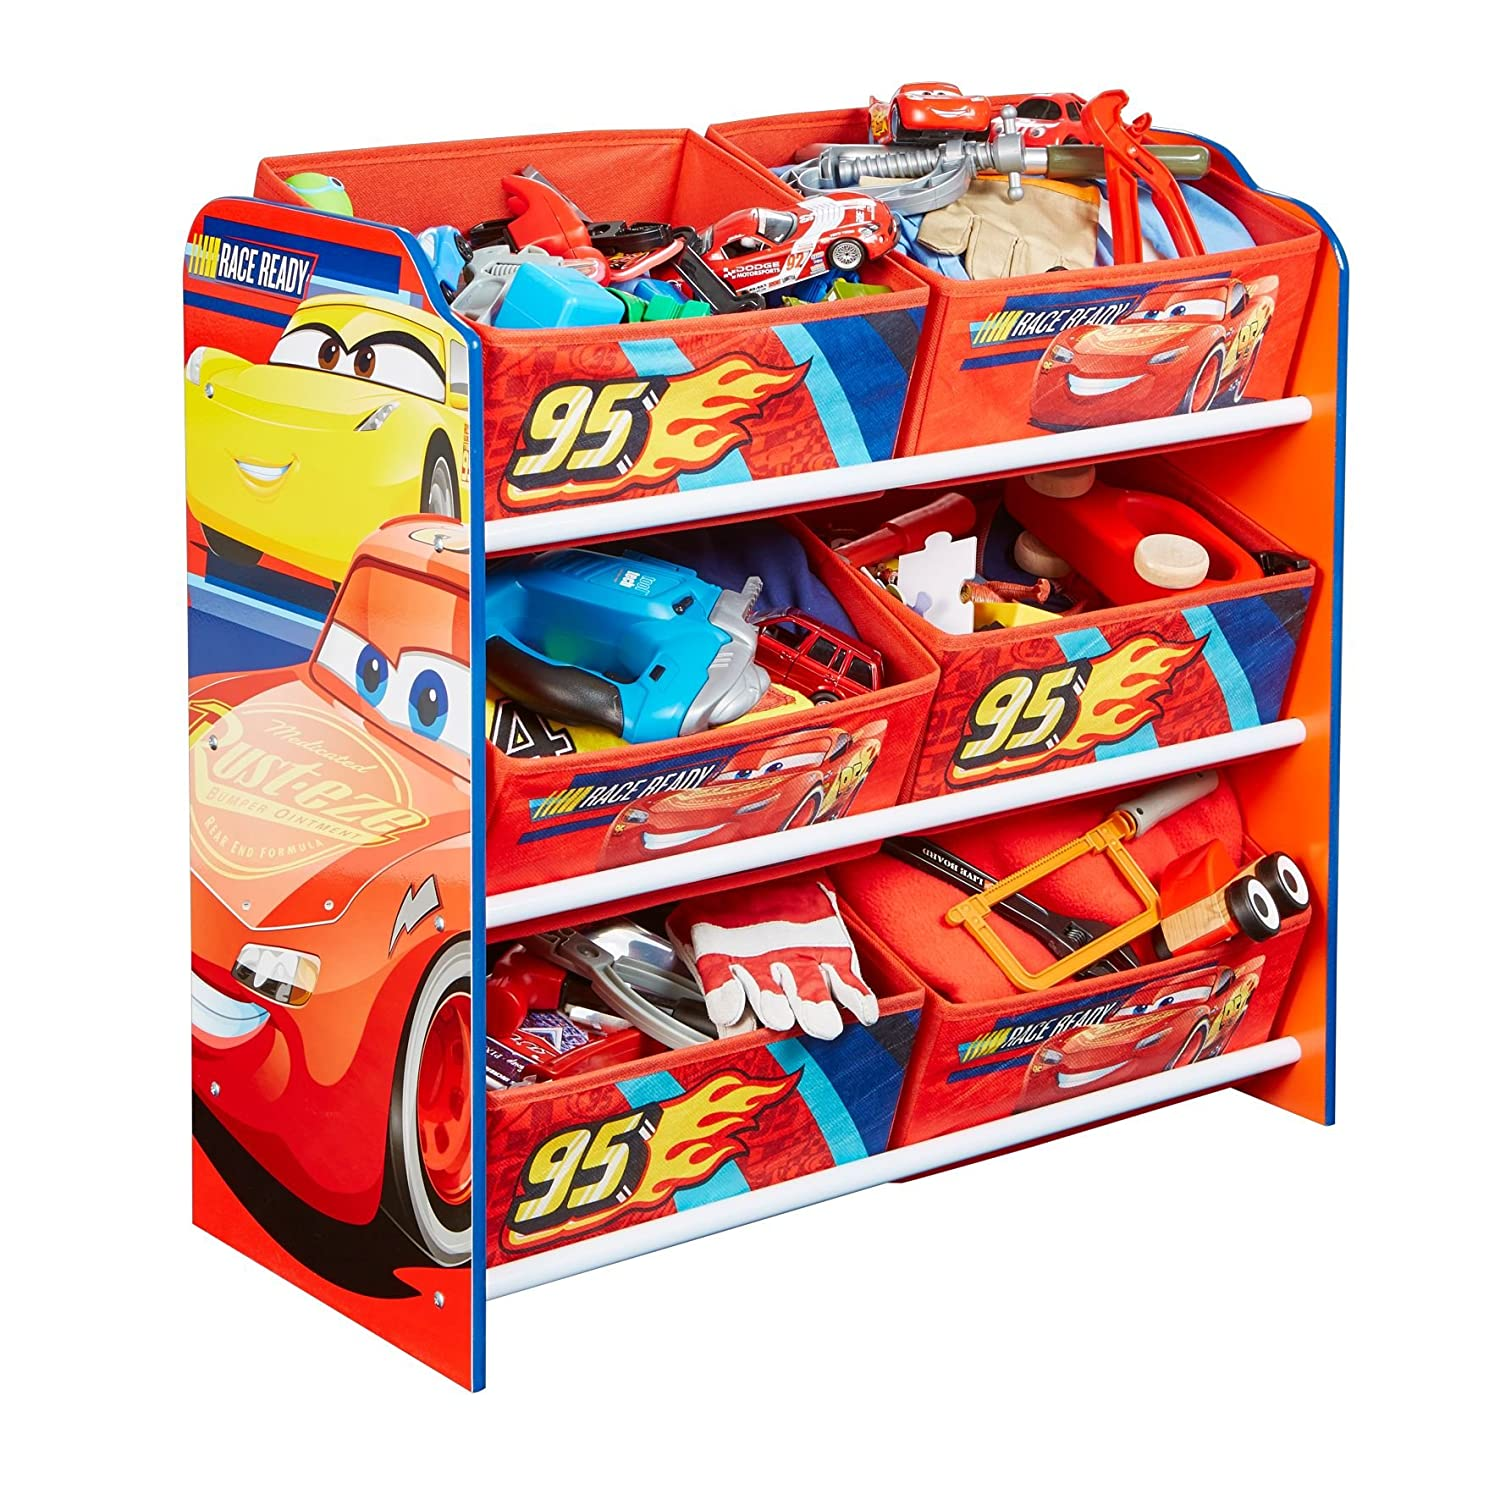 Disney Cars Kids Bedroom Storage Unit with 6 Bins by HelloHome Worlds Apart 471CAA